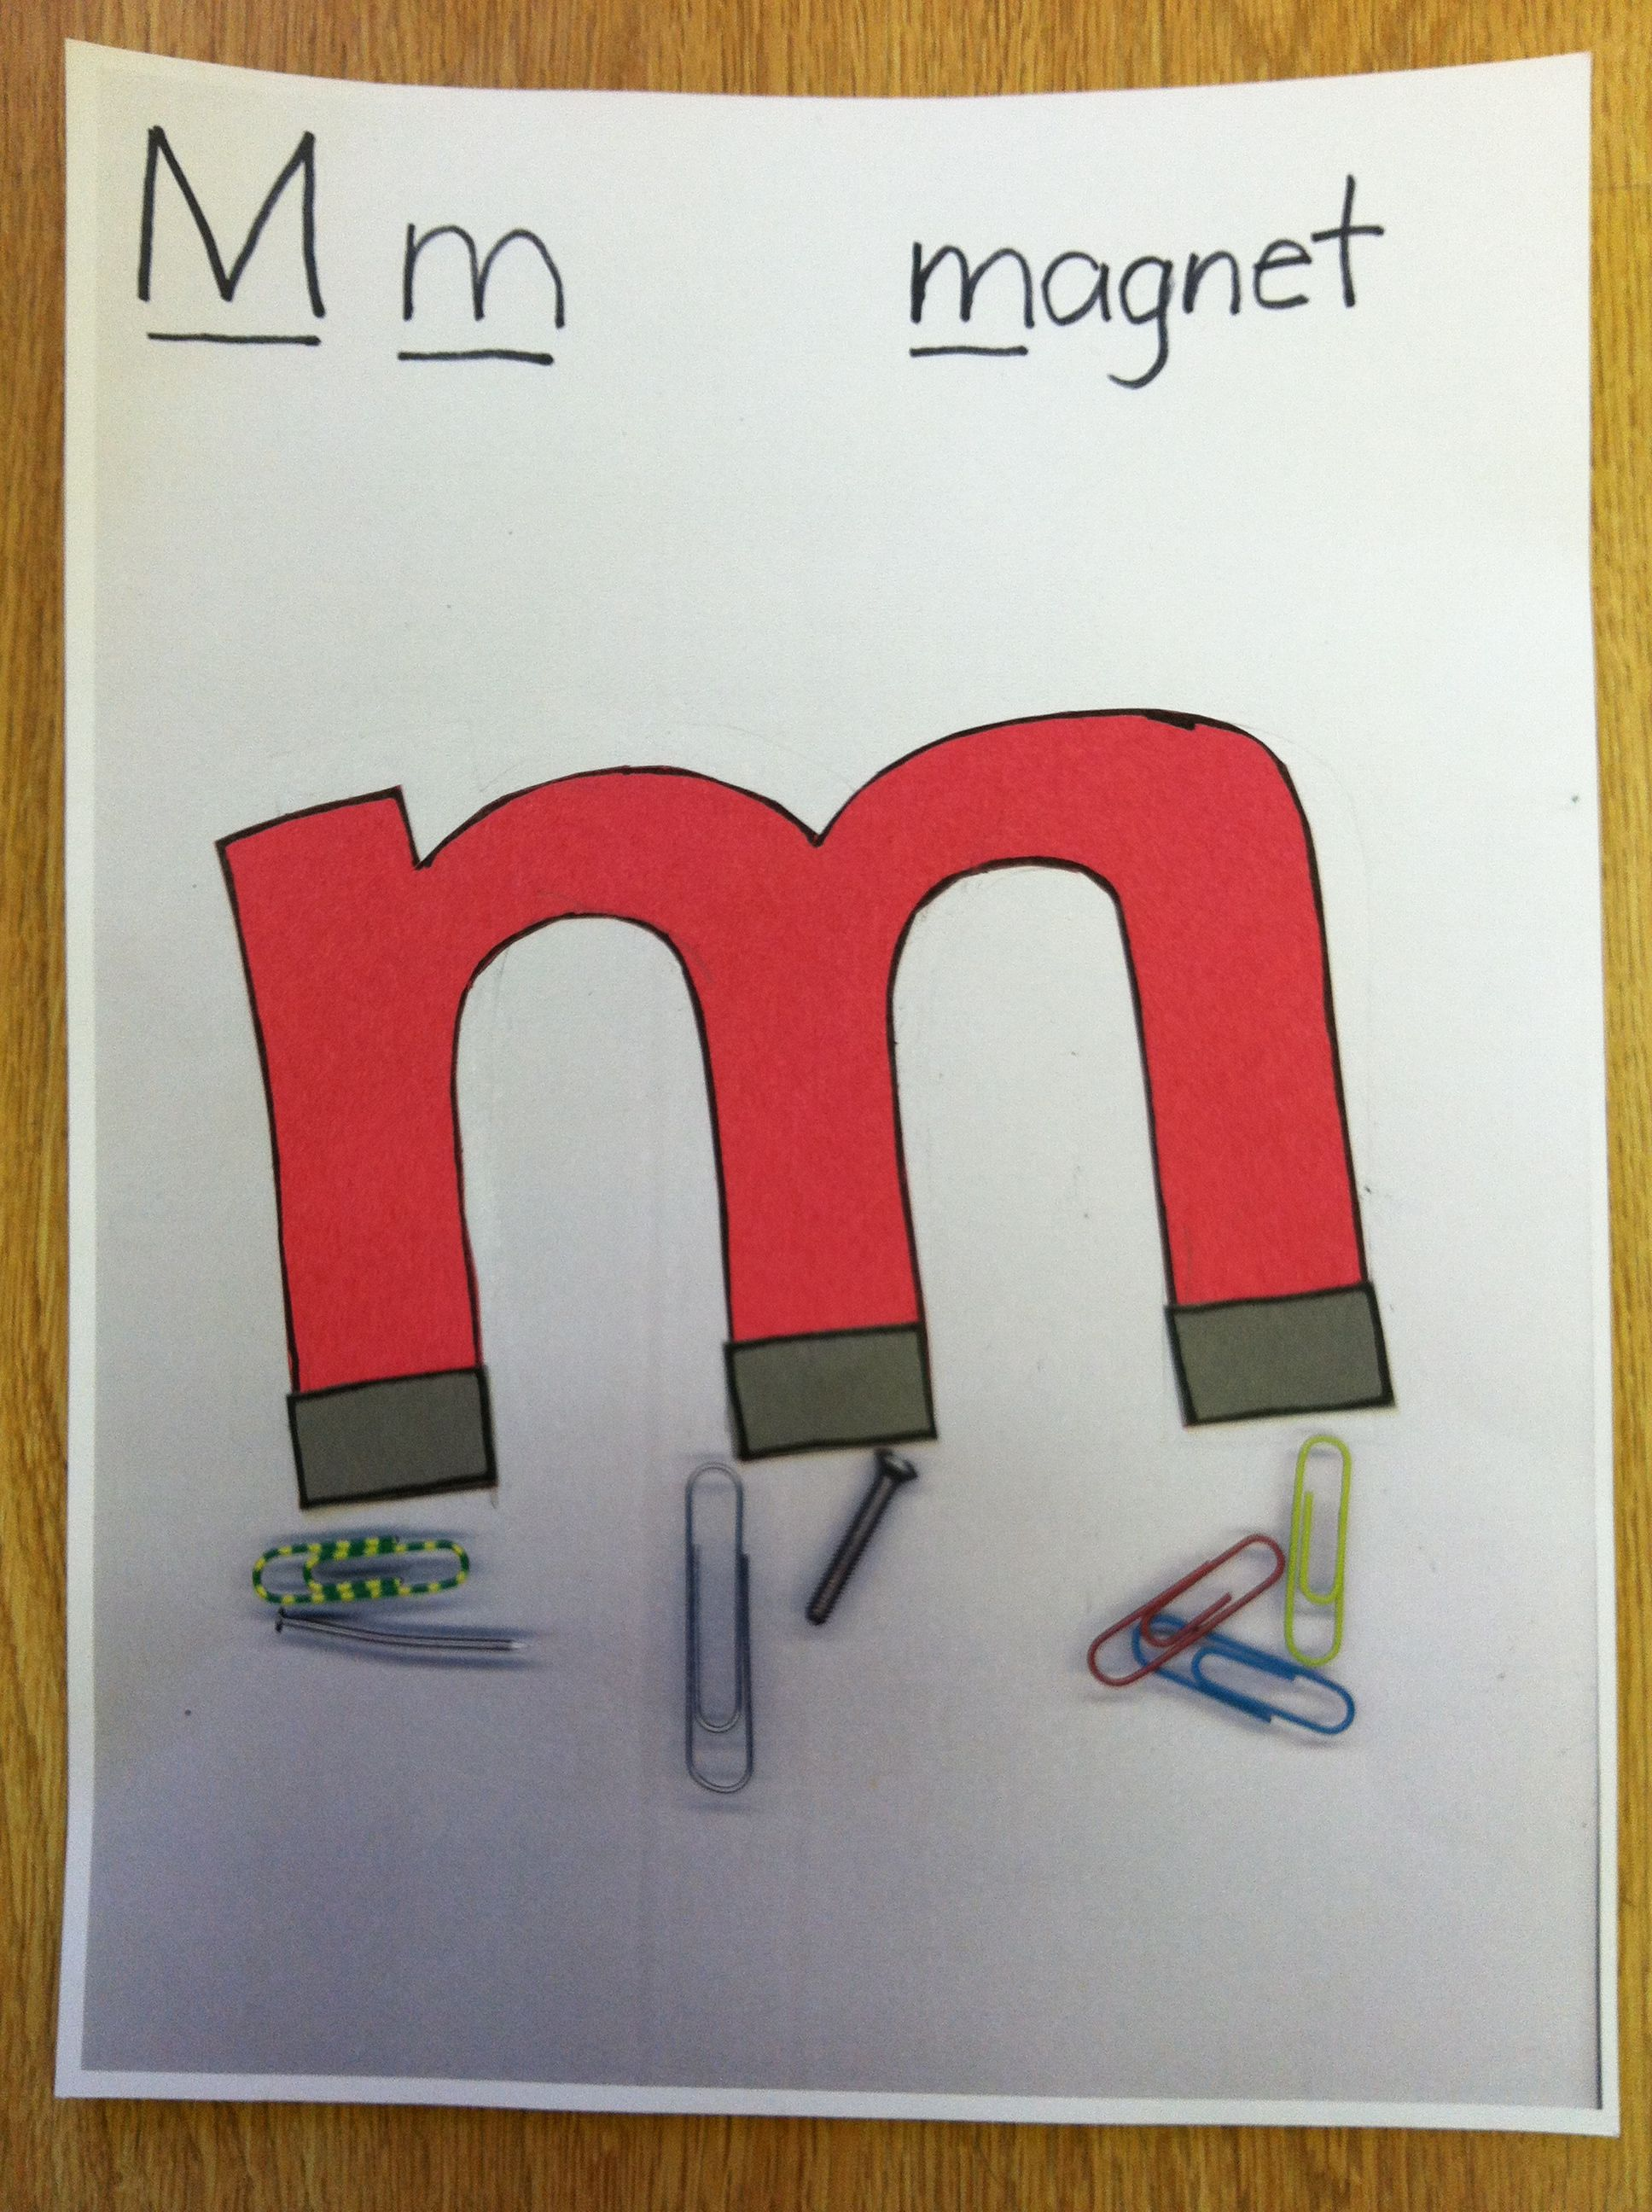 Best Letter M Craft For Preschoolers Image Collection